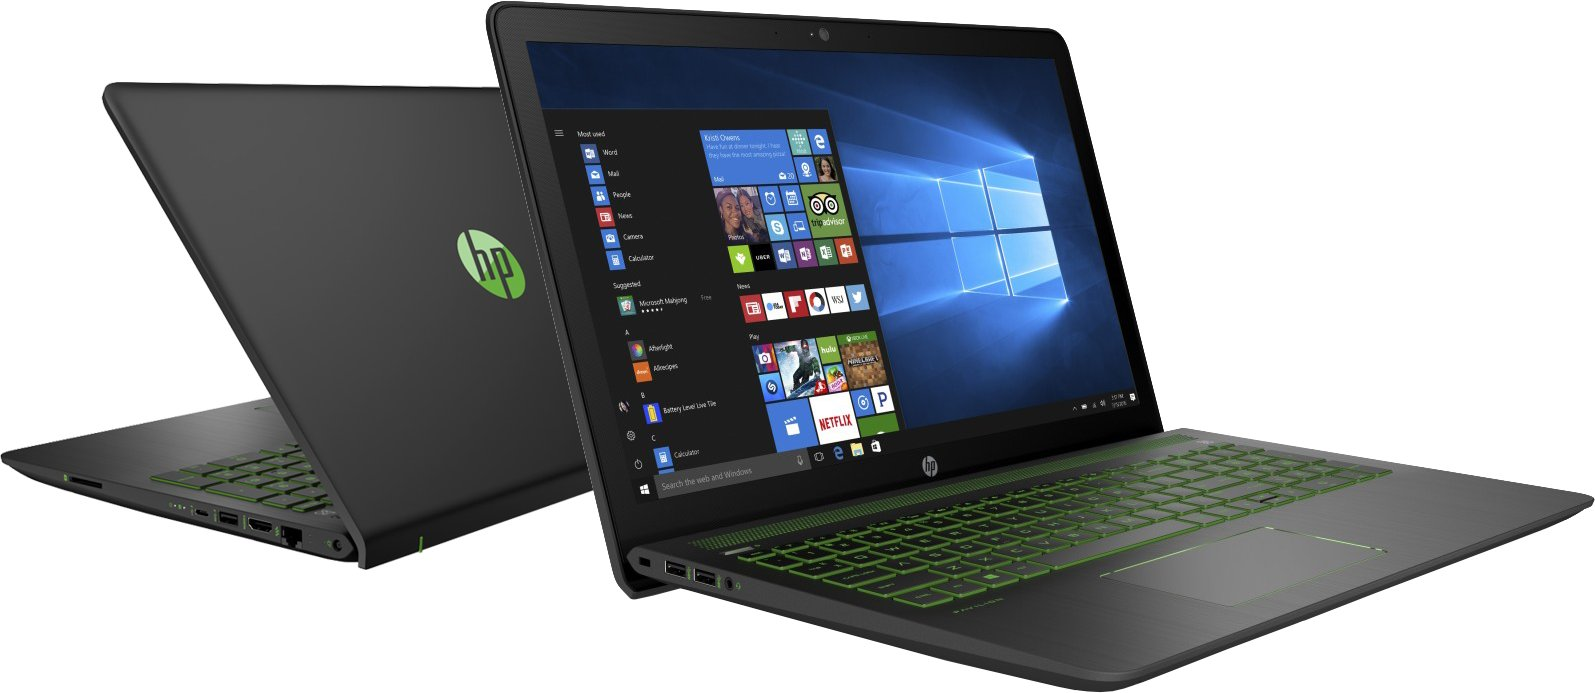 Hp Pavilion Power 15-cb002ne